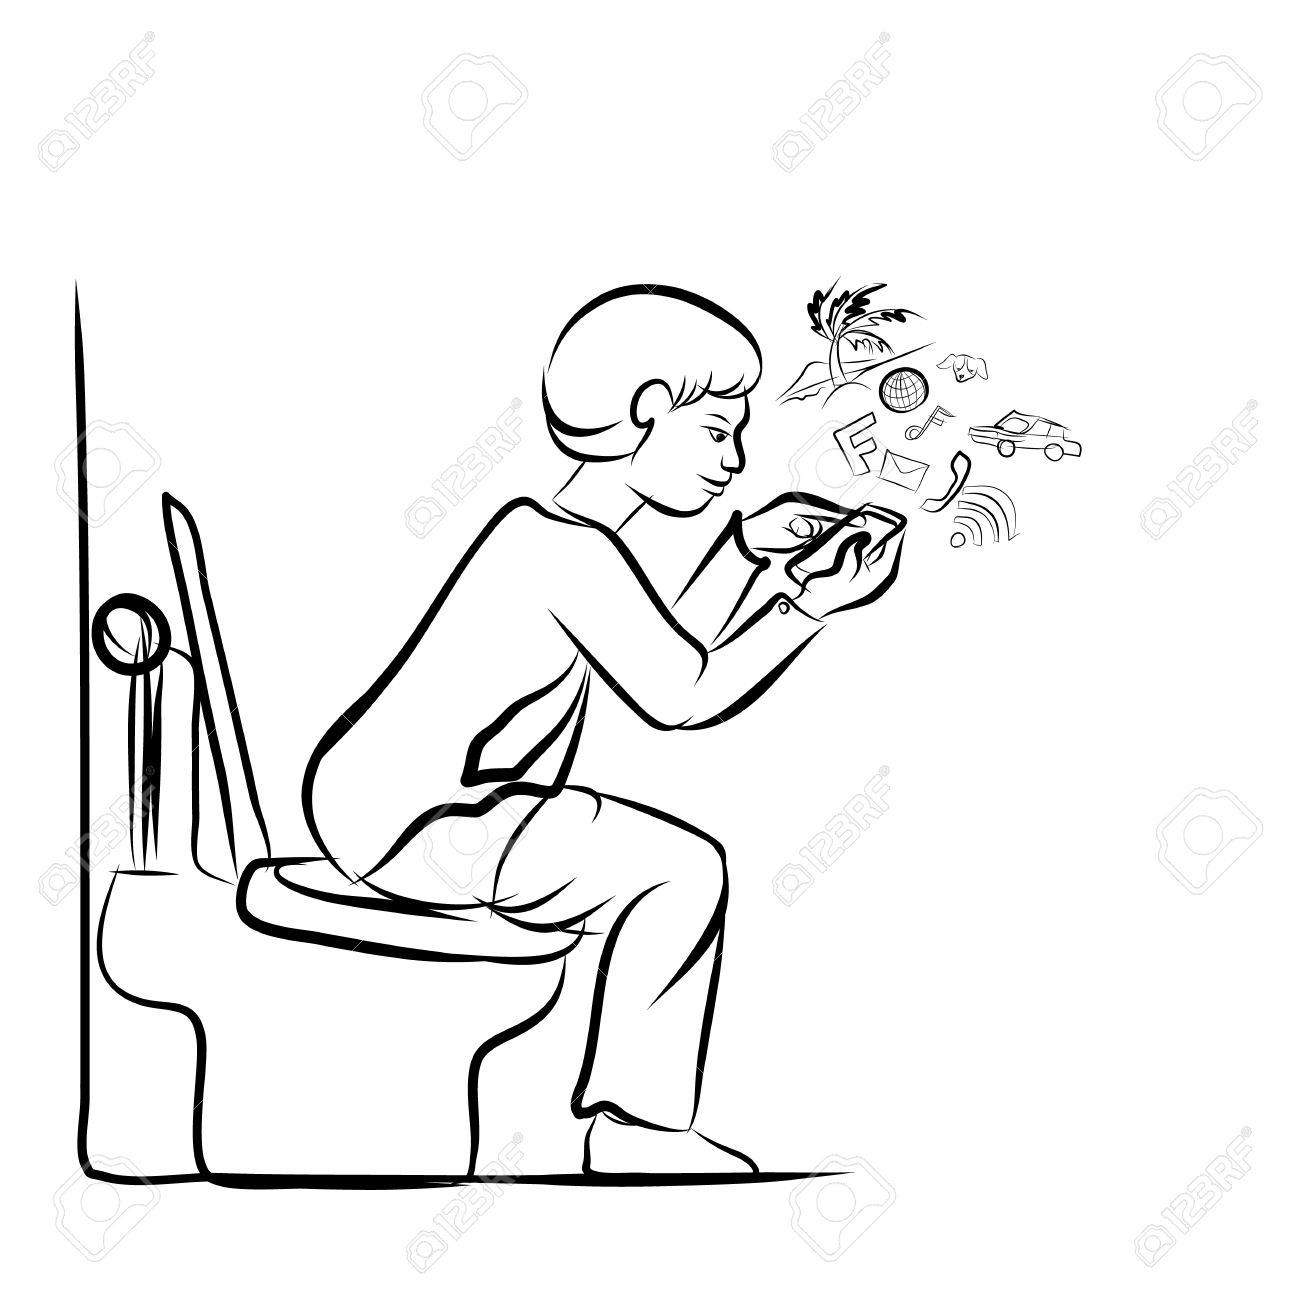 Drawing Of Man Using Mobile Phone For Social Network In Toilet Stock ...